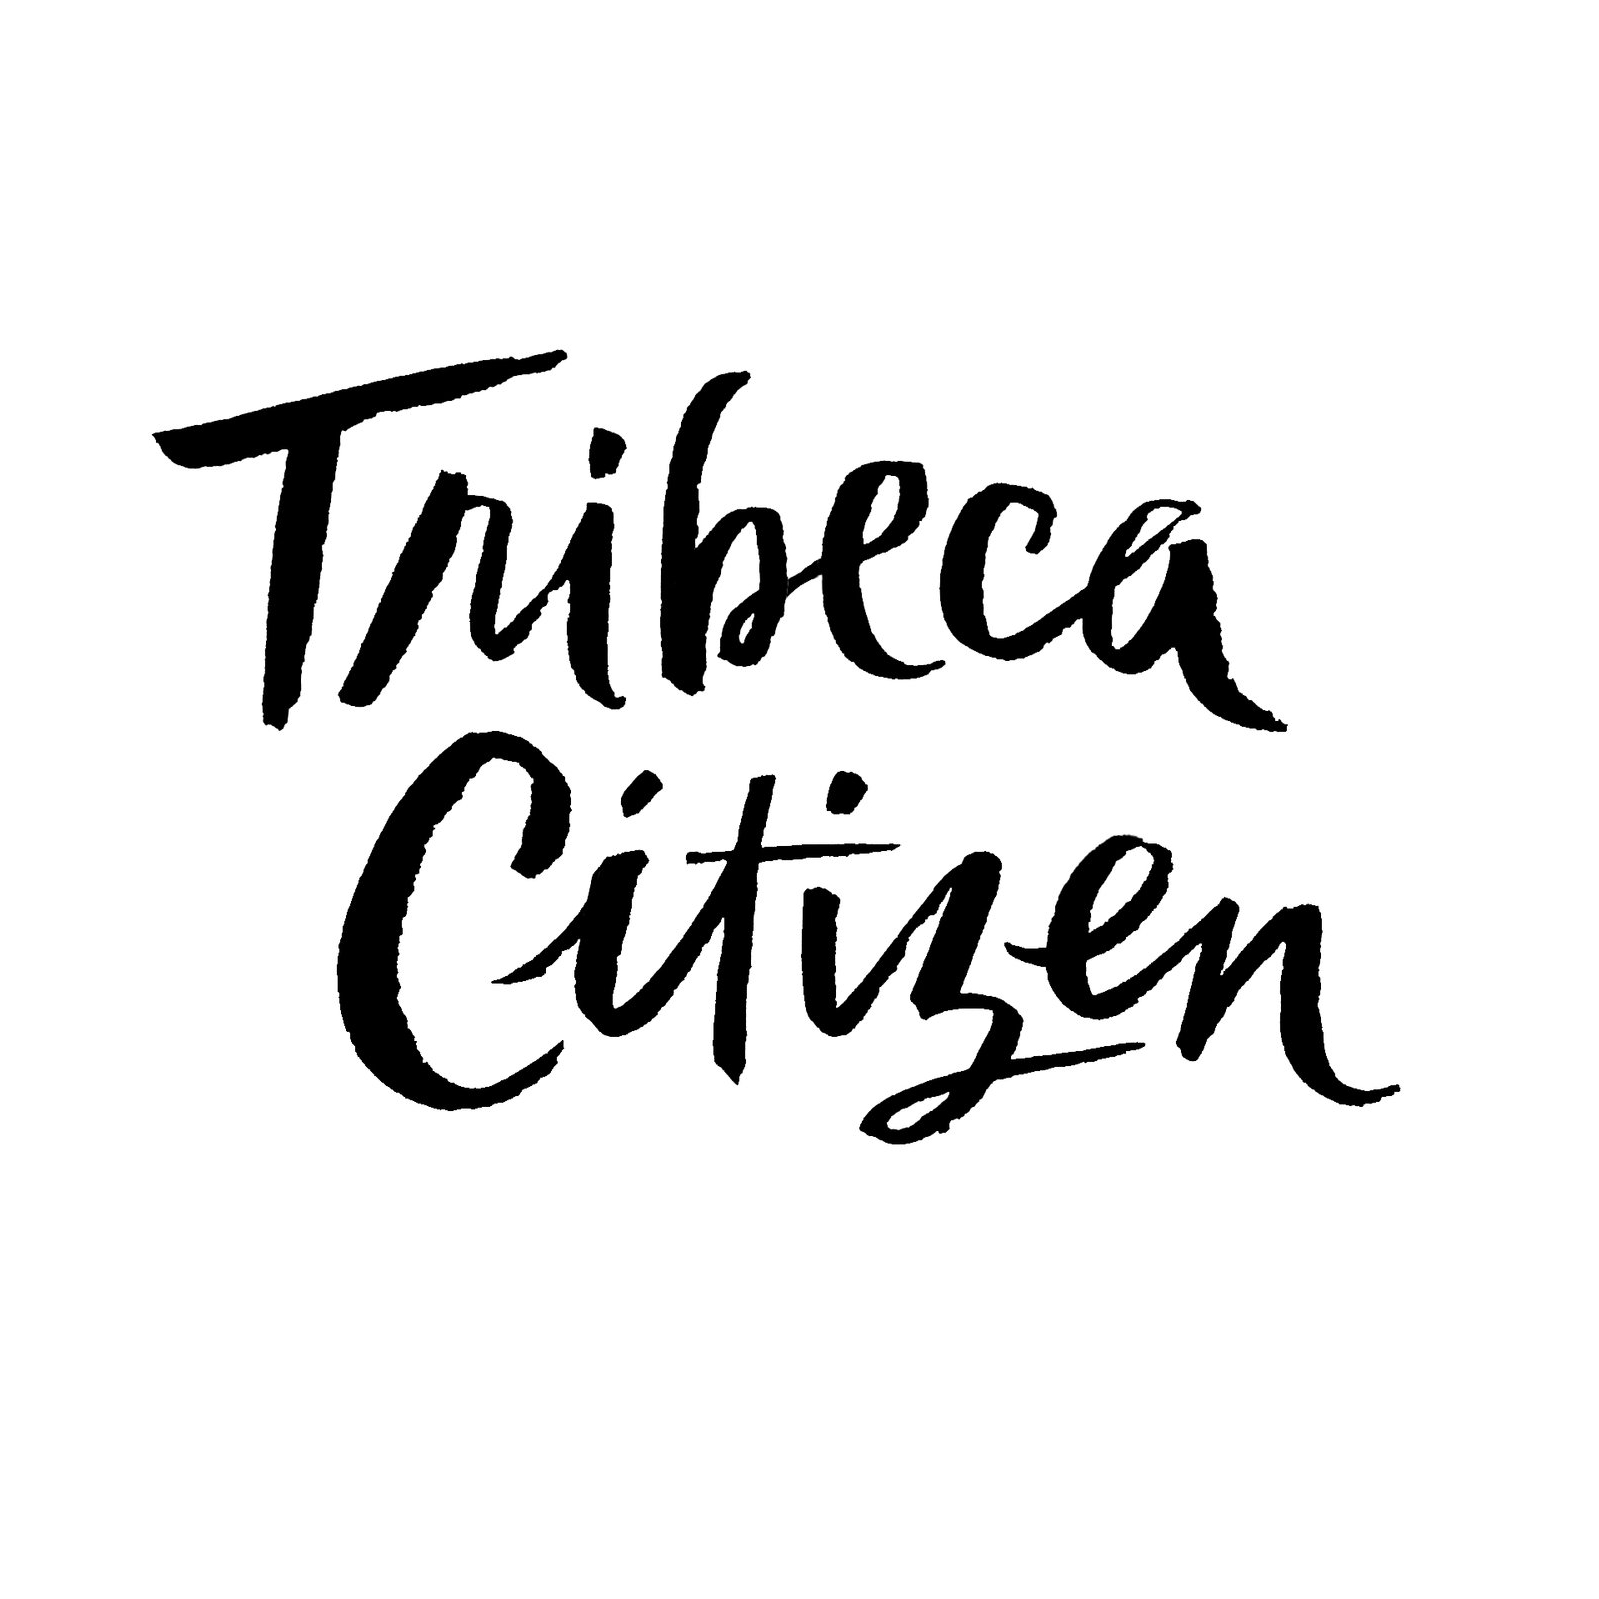 Hand-Lettered-logo-by-Erin-Ellis_Tribeca-Citizen-8.jpg